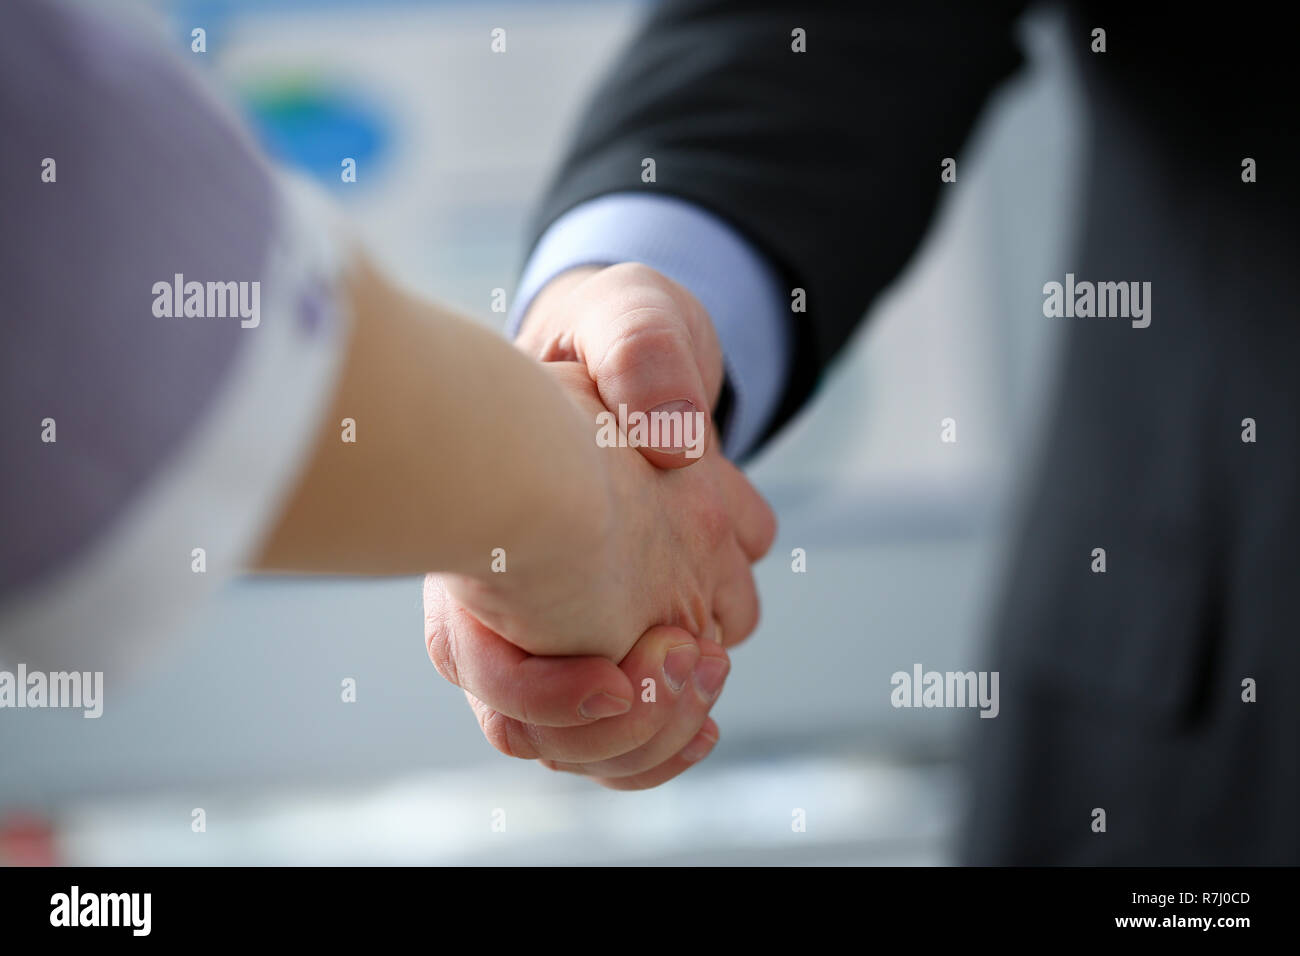 Man in suit and tie give hand as hello in office - Stock Image